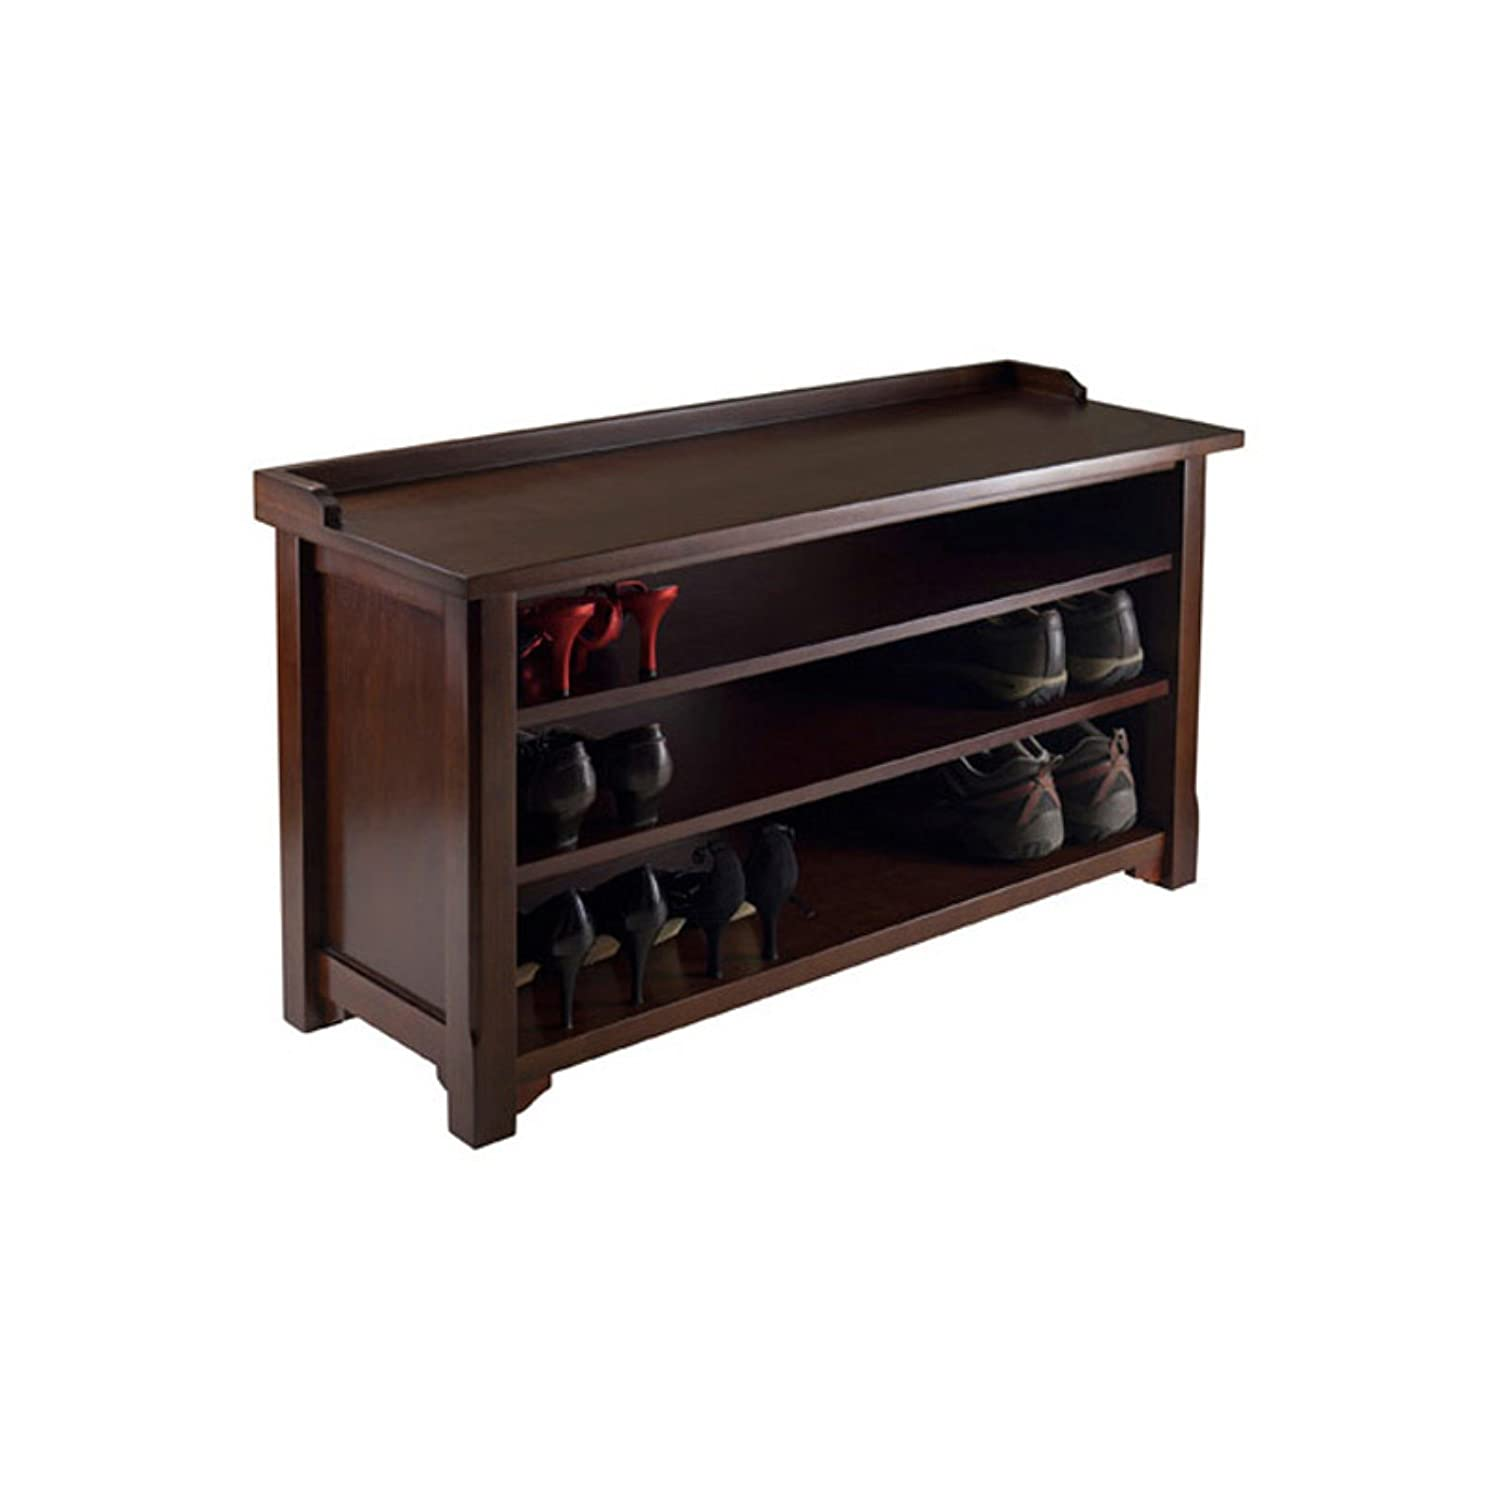 Amazon.com: Dayton Entryway Bench with Shoe Storage, Walnut + Expert Guide:  Kitchen & Dining